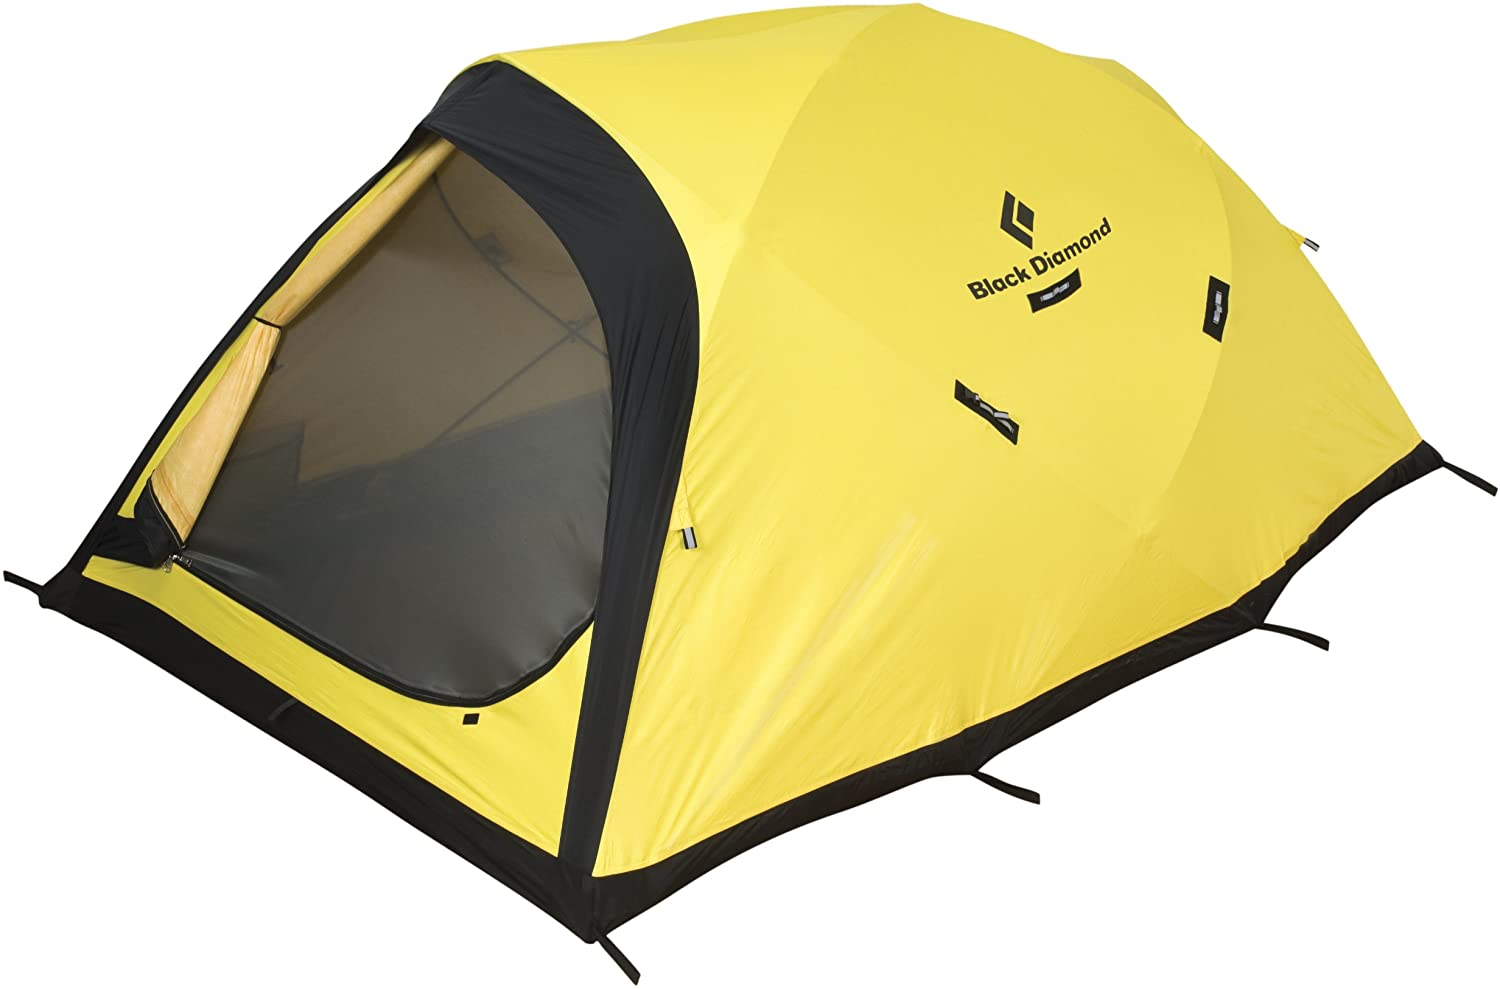 Top 10 Best Tents for High Winds 2020 Reviews 12